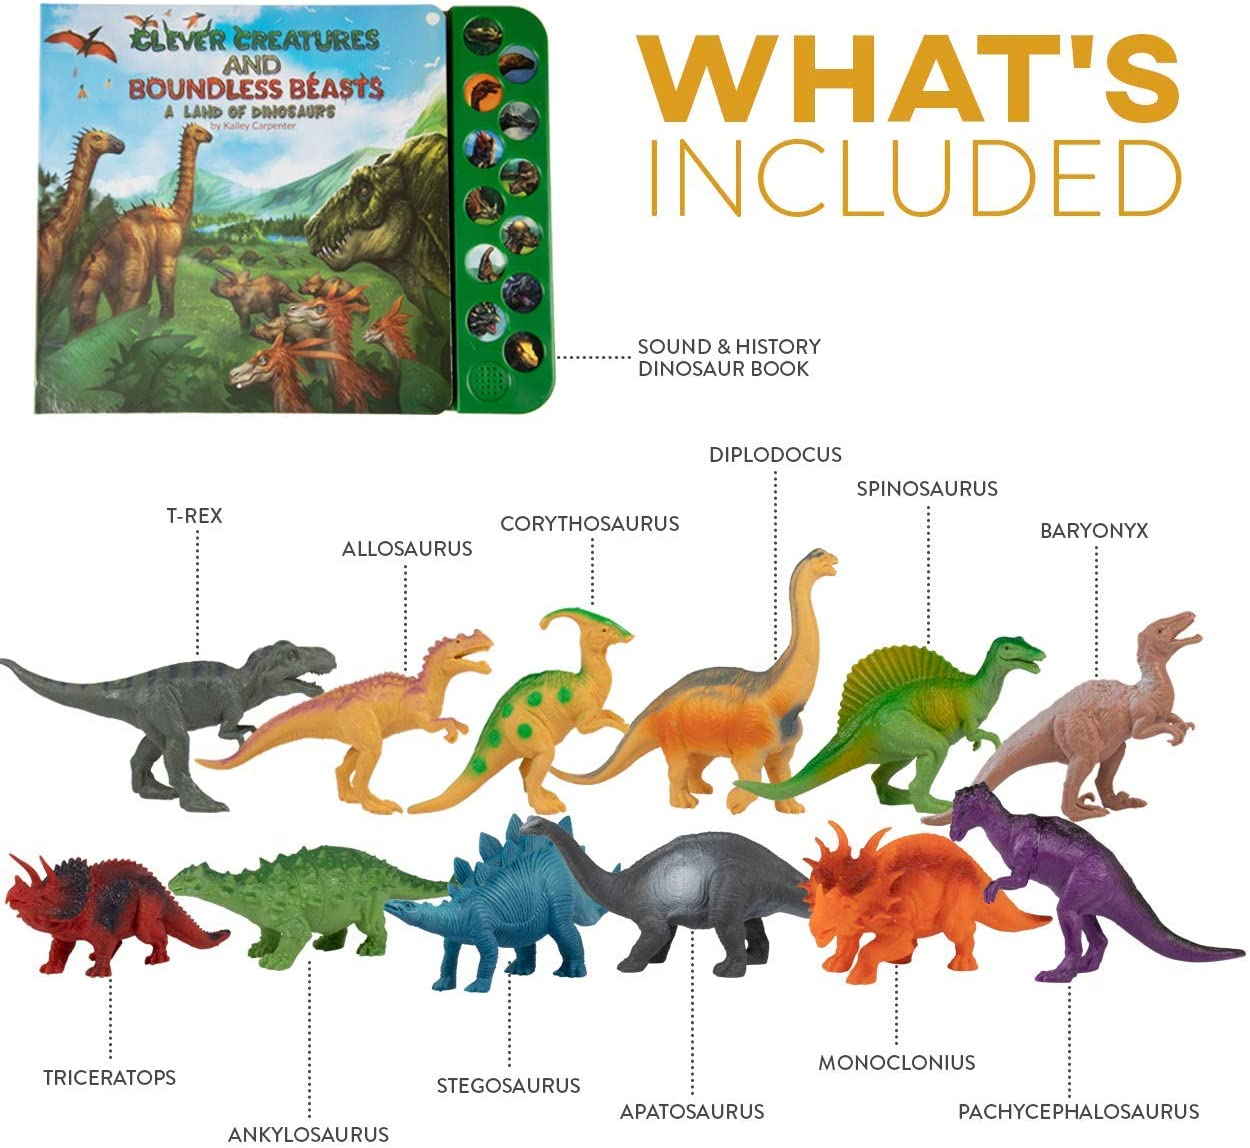 Amazon Com Li L Gen Dinosaur Toys For Boys And Girls 3 Years Old Up Realistic Looking 7 Dinosaurs Pack Of 12 Animal Dinosaur Figures With Dinosaur Sound Book Dinosaur Set With Sound Names of dinosaurs are usually based on the location of their finding, or even the names of there are a lot of dinosaur names that you can find on this page, in addition to their. li l gen dinosaur toys for boys and girls 3 years old up realistic looking 7 dinosaurs pack of 12 animal dinosaur figures with dinosaur sound